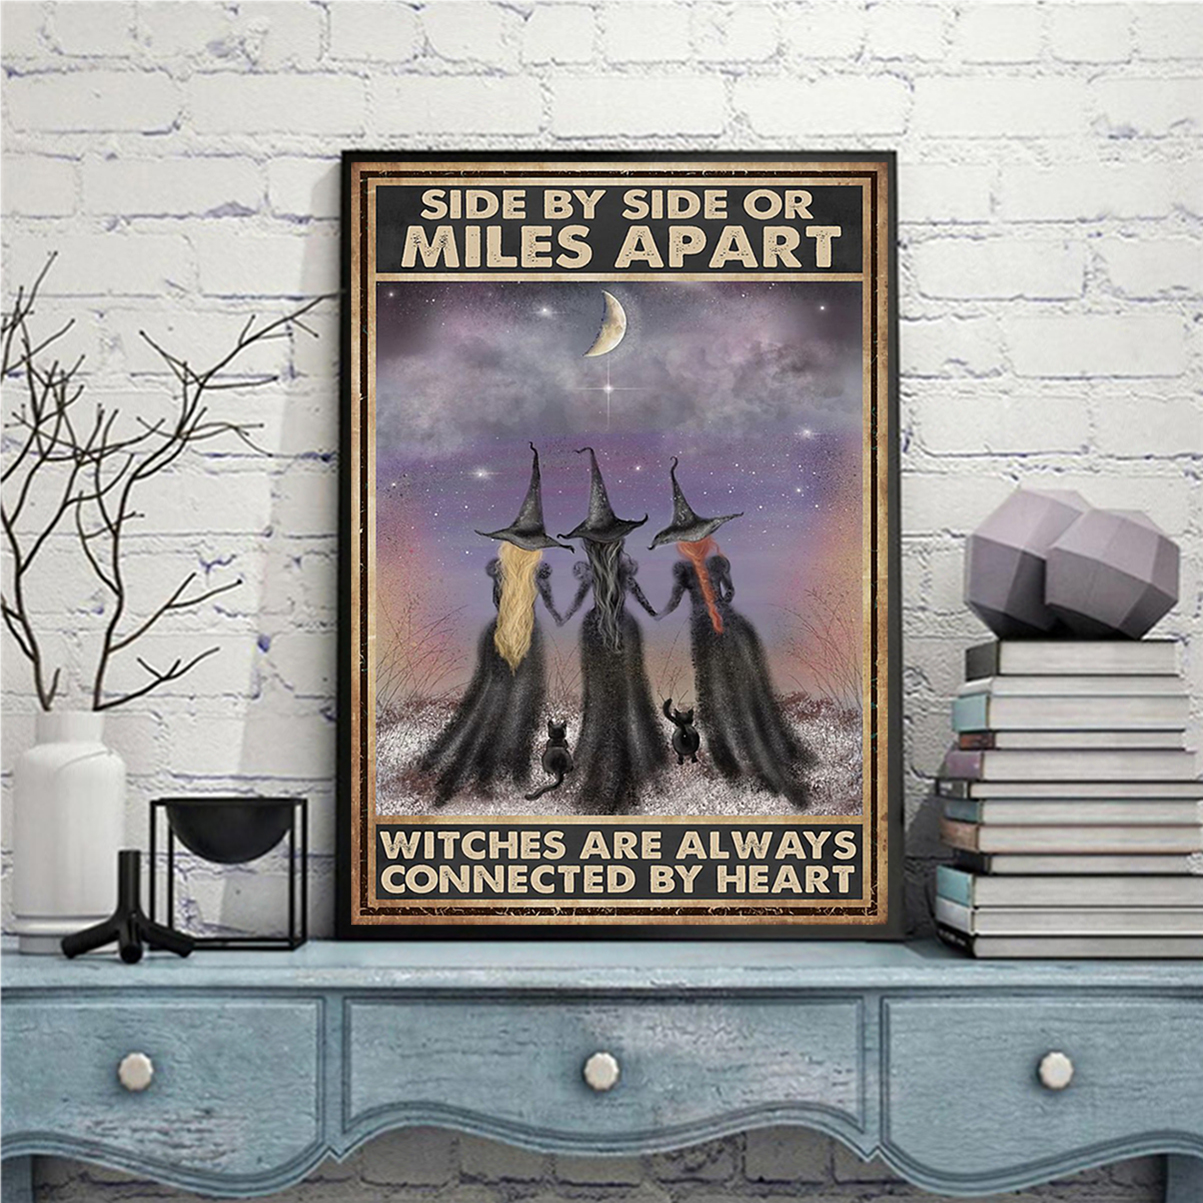 Side by side or miles apart witches are always connected by heart poster A3